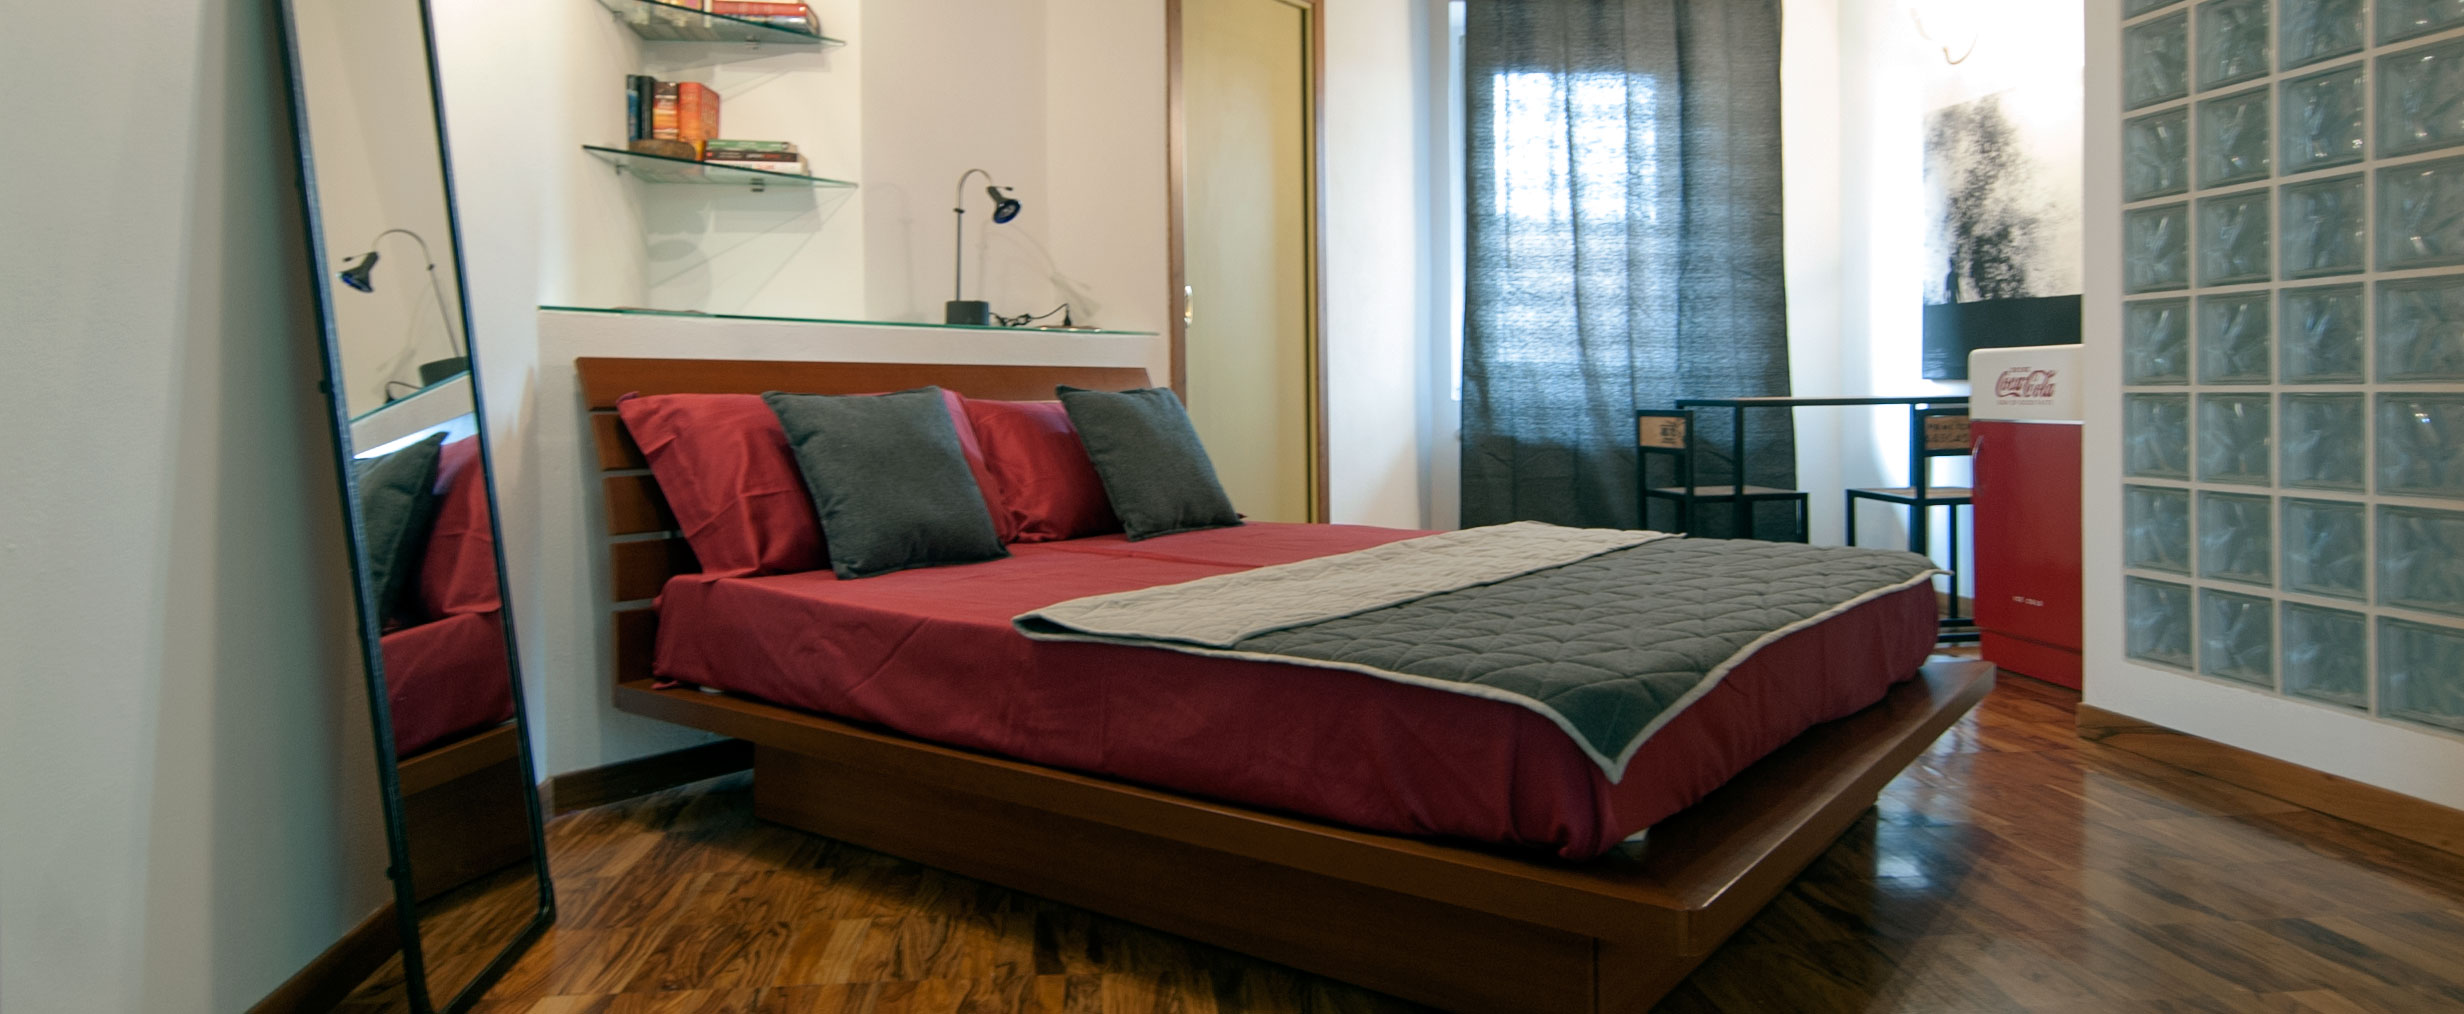 bed and breakfast treviglio